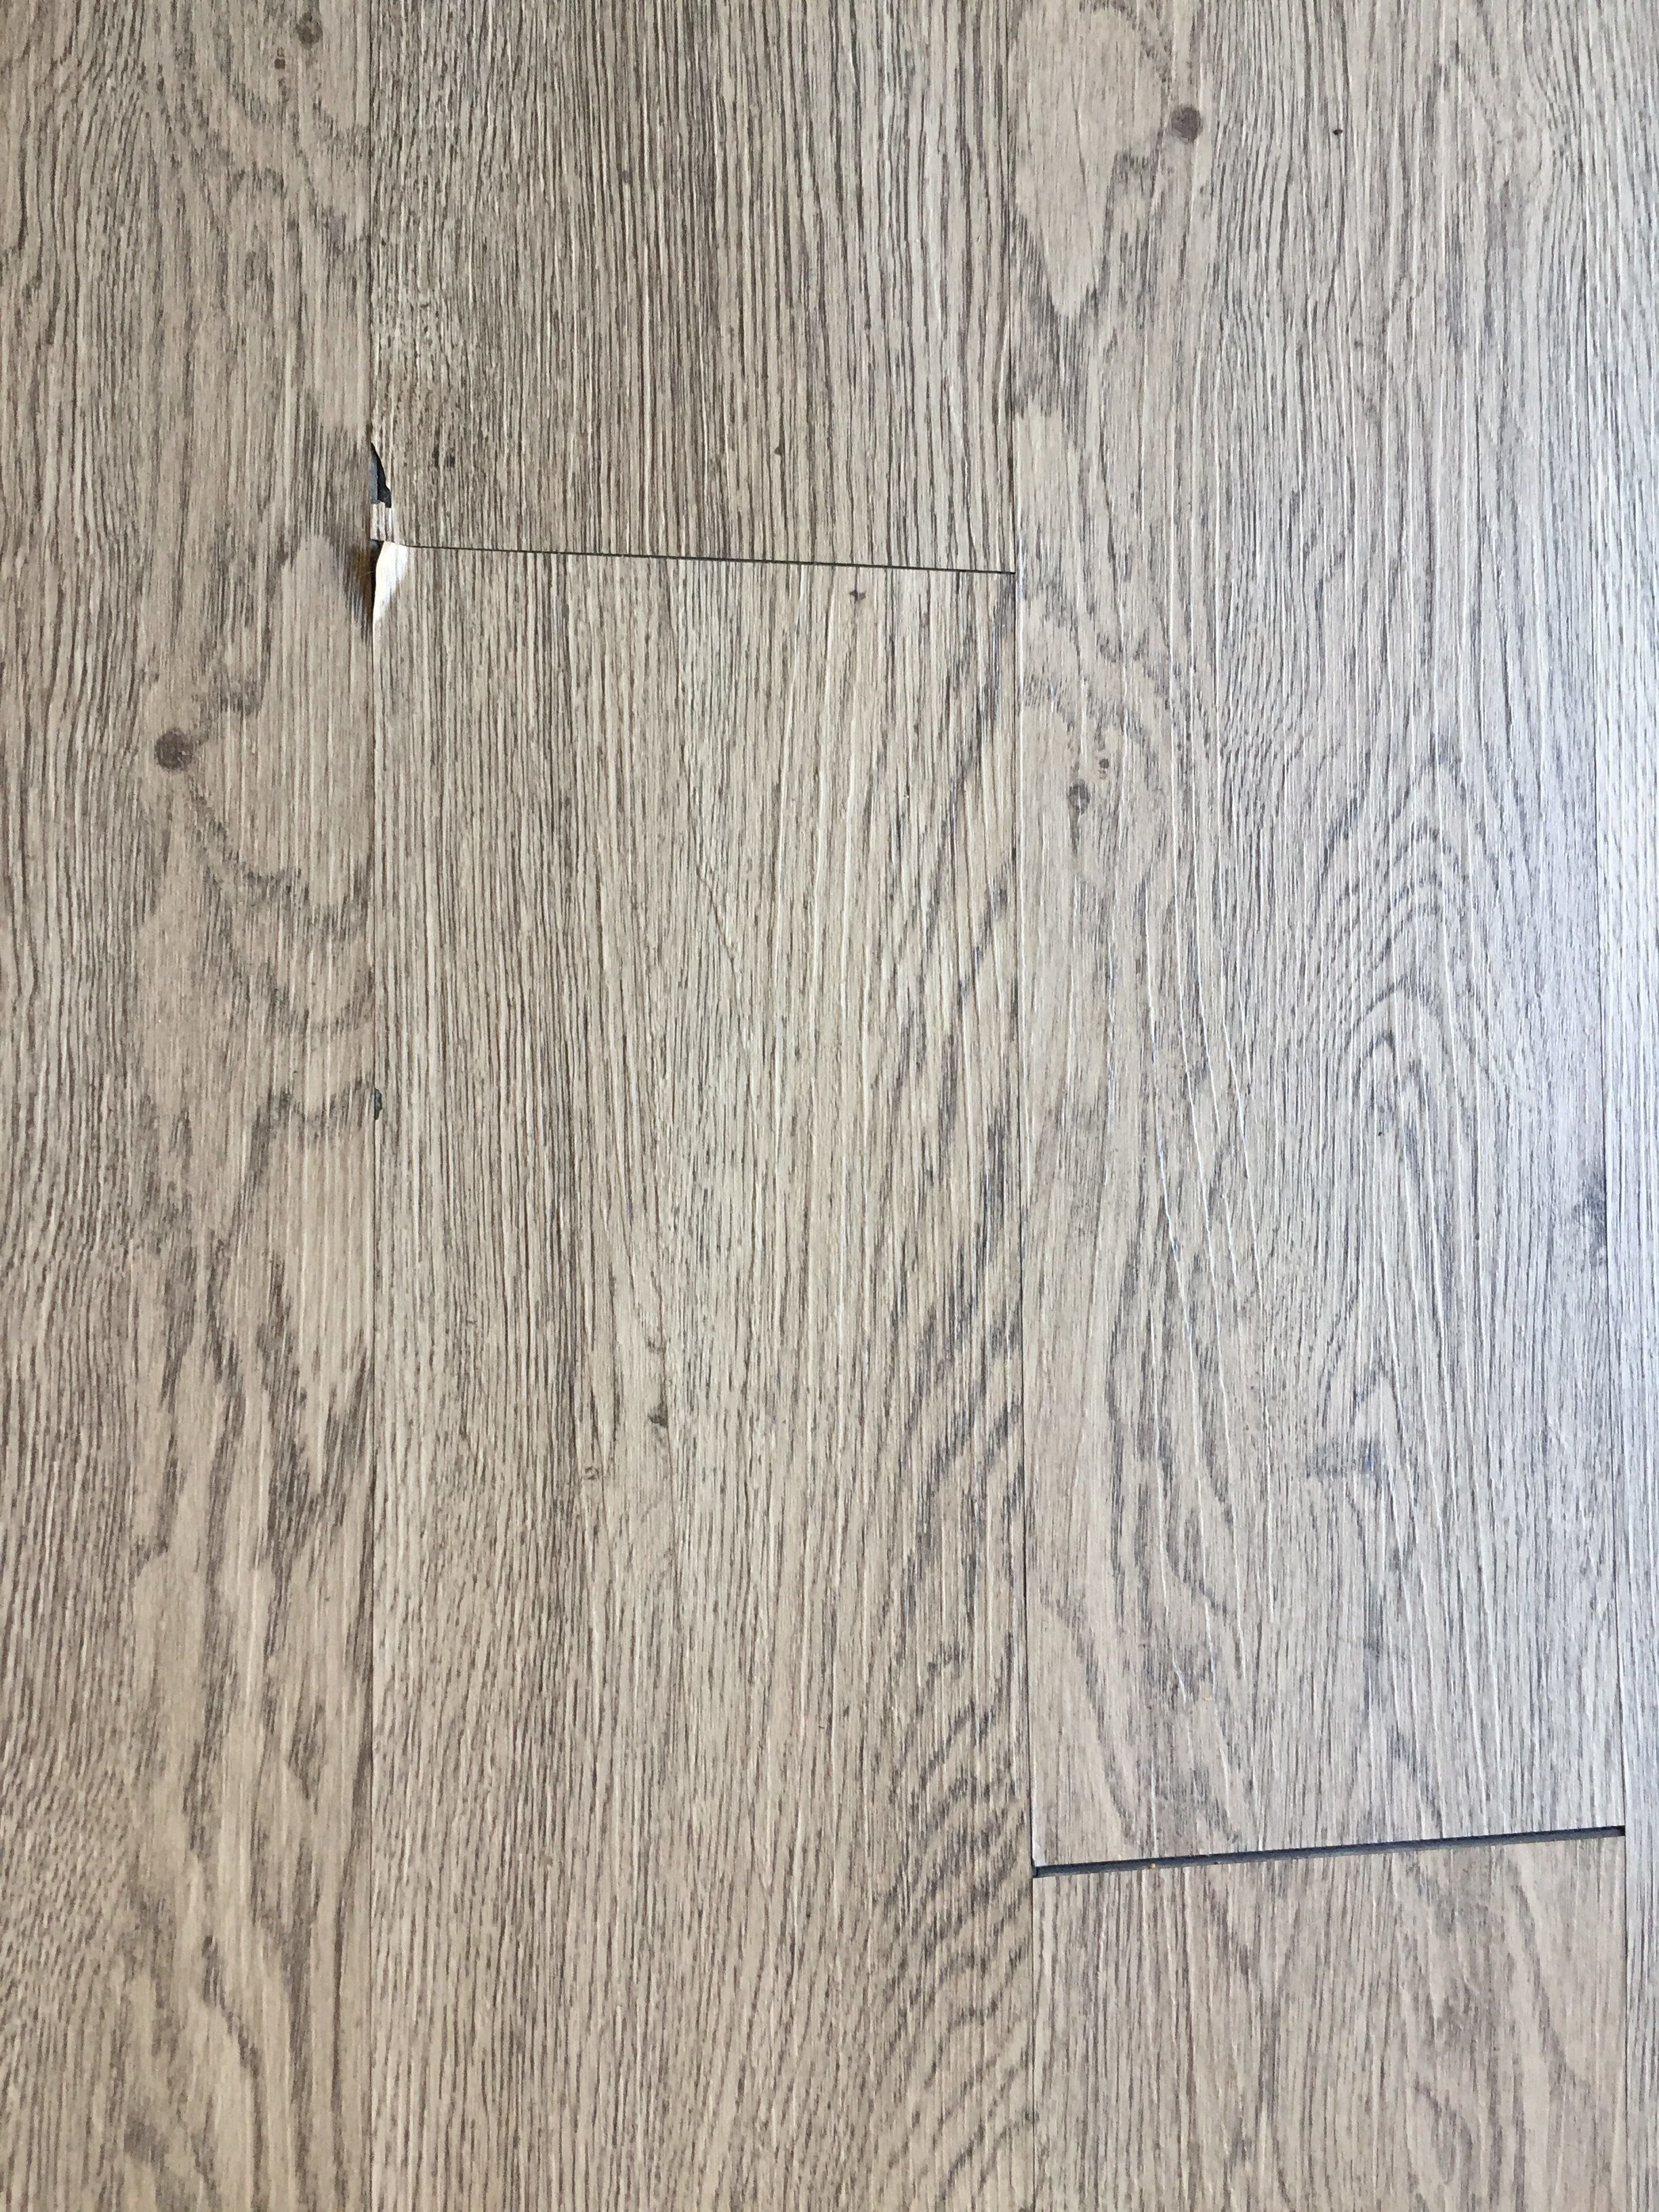 top 621 reviews and complaints about mohawk flooring